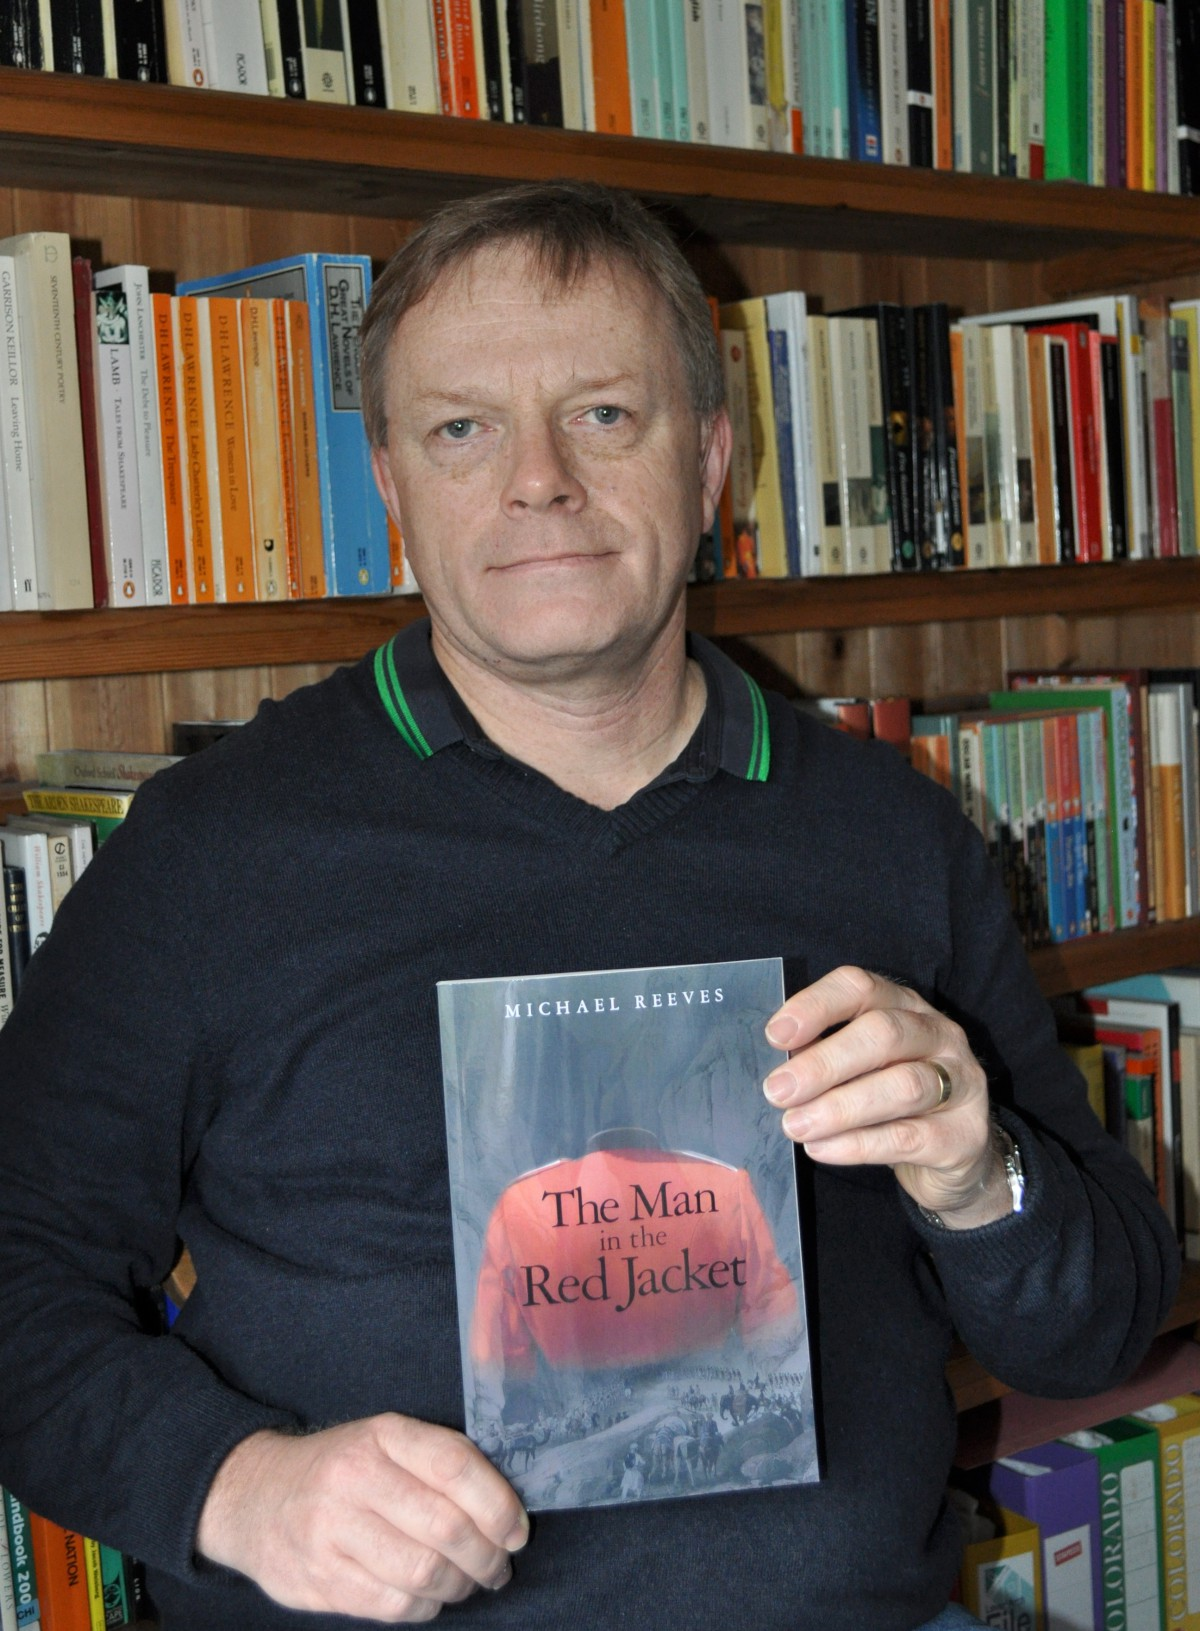 Sutton author Michael Reeves